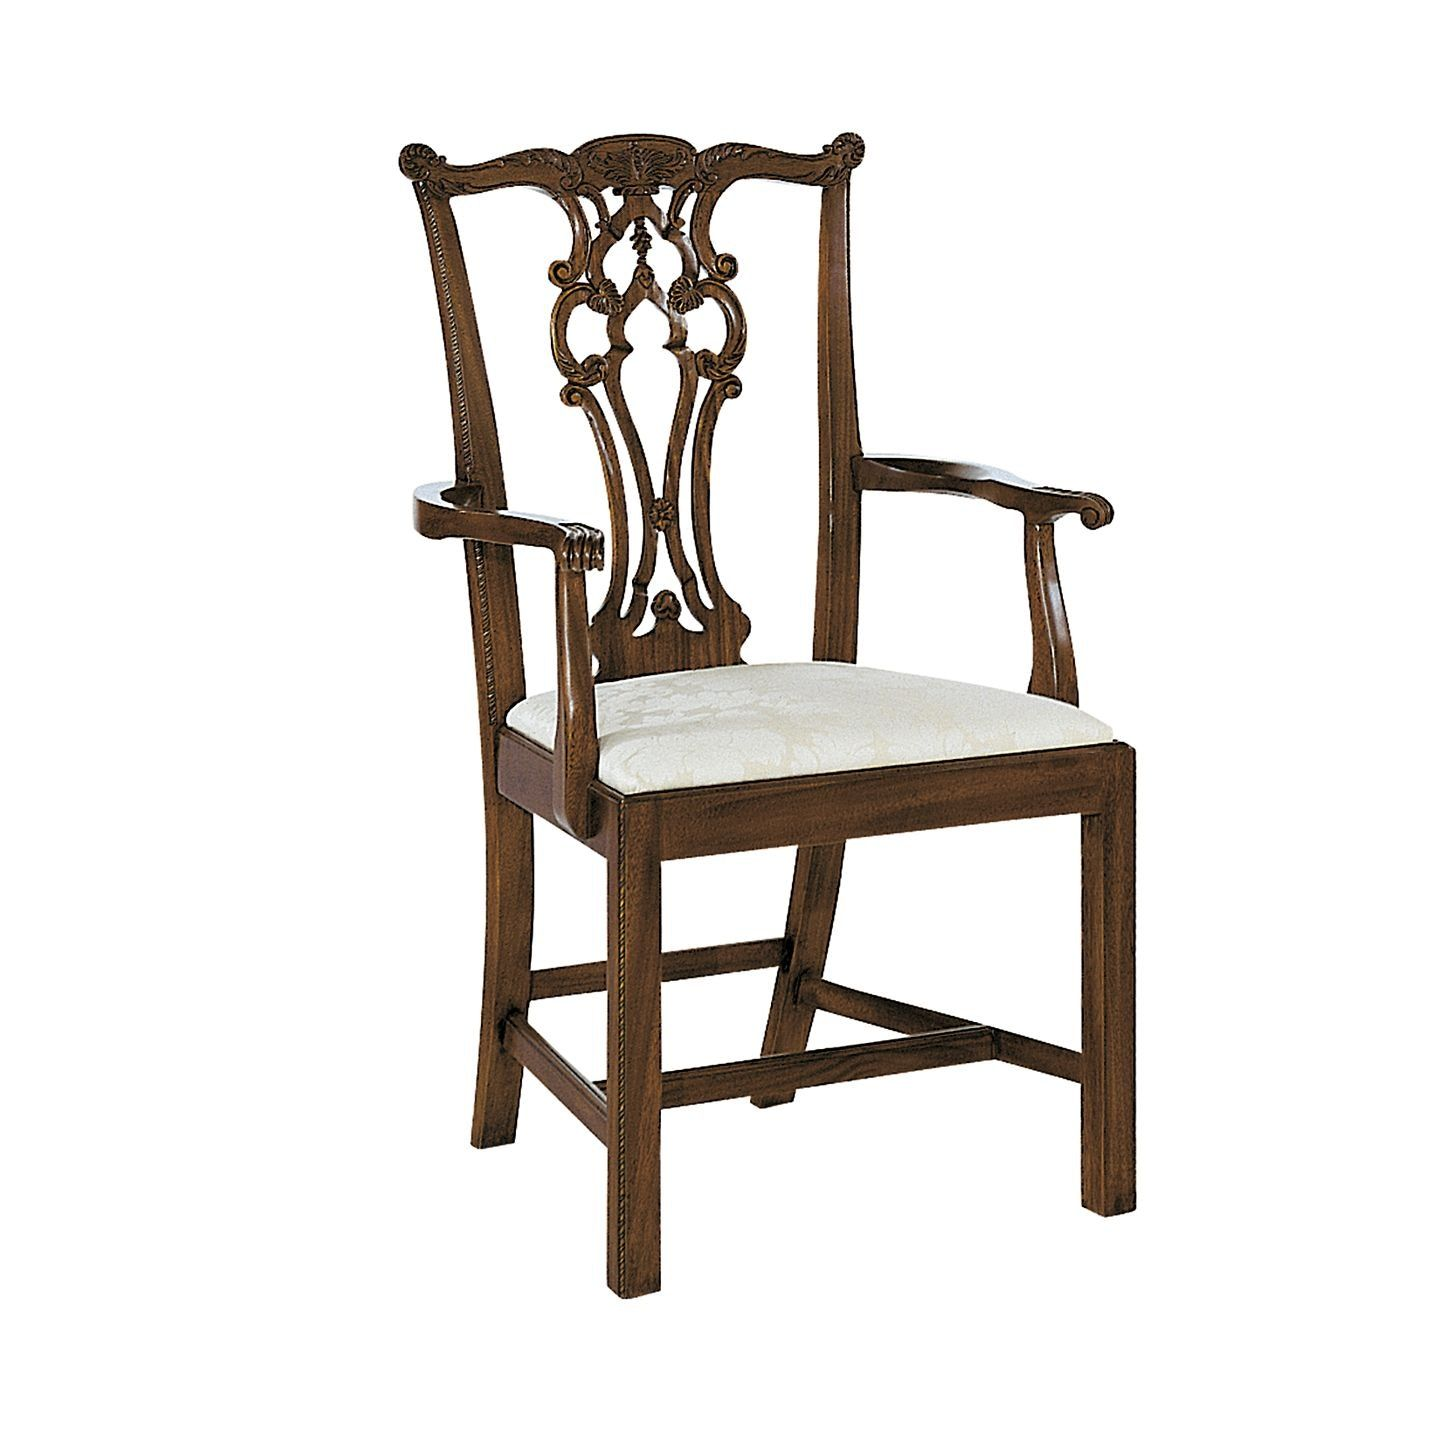 Rhode Island Chippendale Arm Chair By Hickory Chair Pearson Maitland Smith Contemporary Modern Dining Chair Hickory Chair Modern Dining Chairs